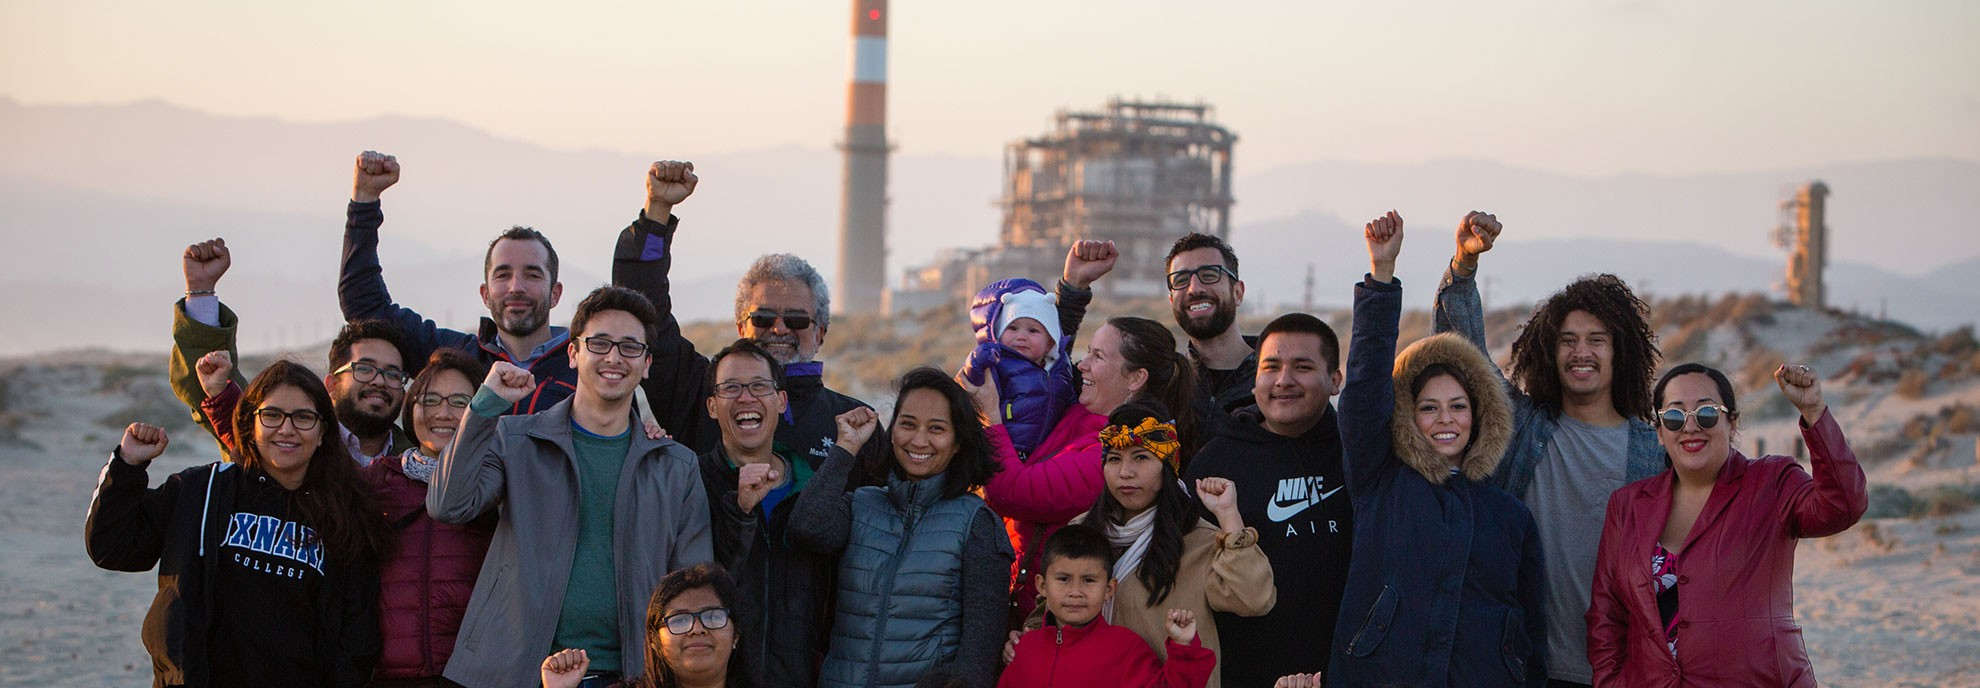 Celebrating victory over the Puente Power Plant.